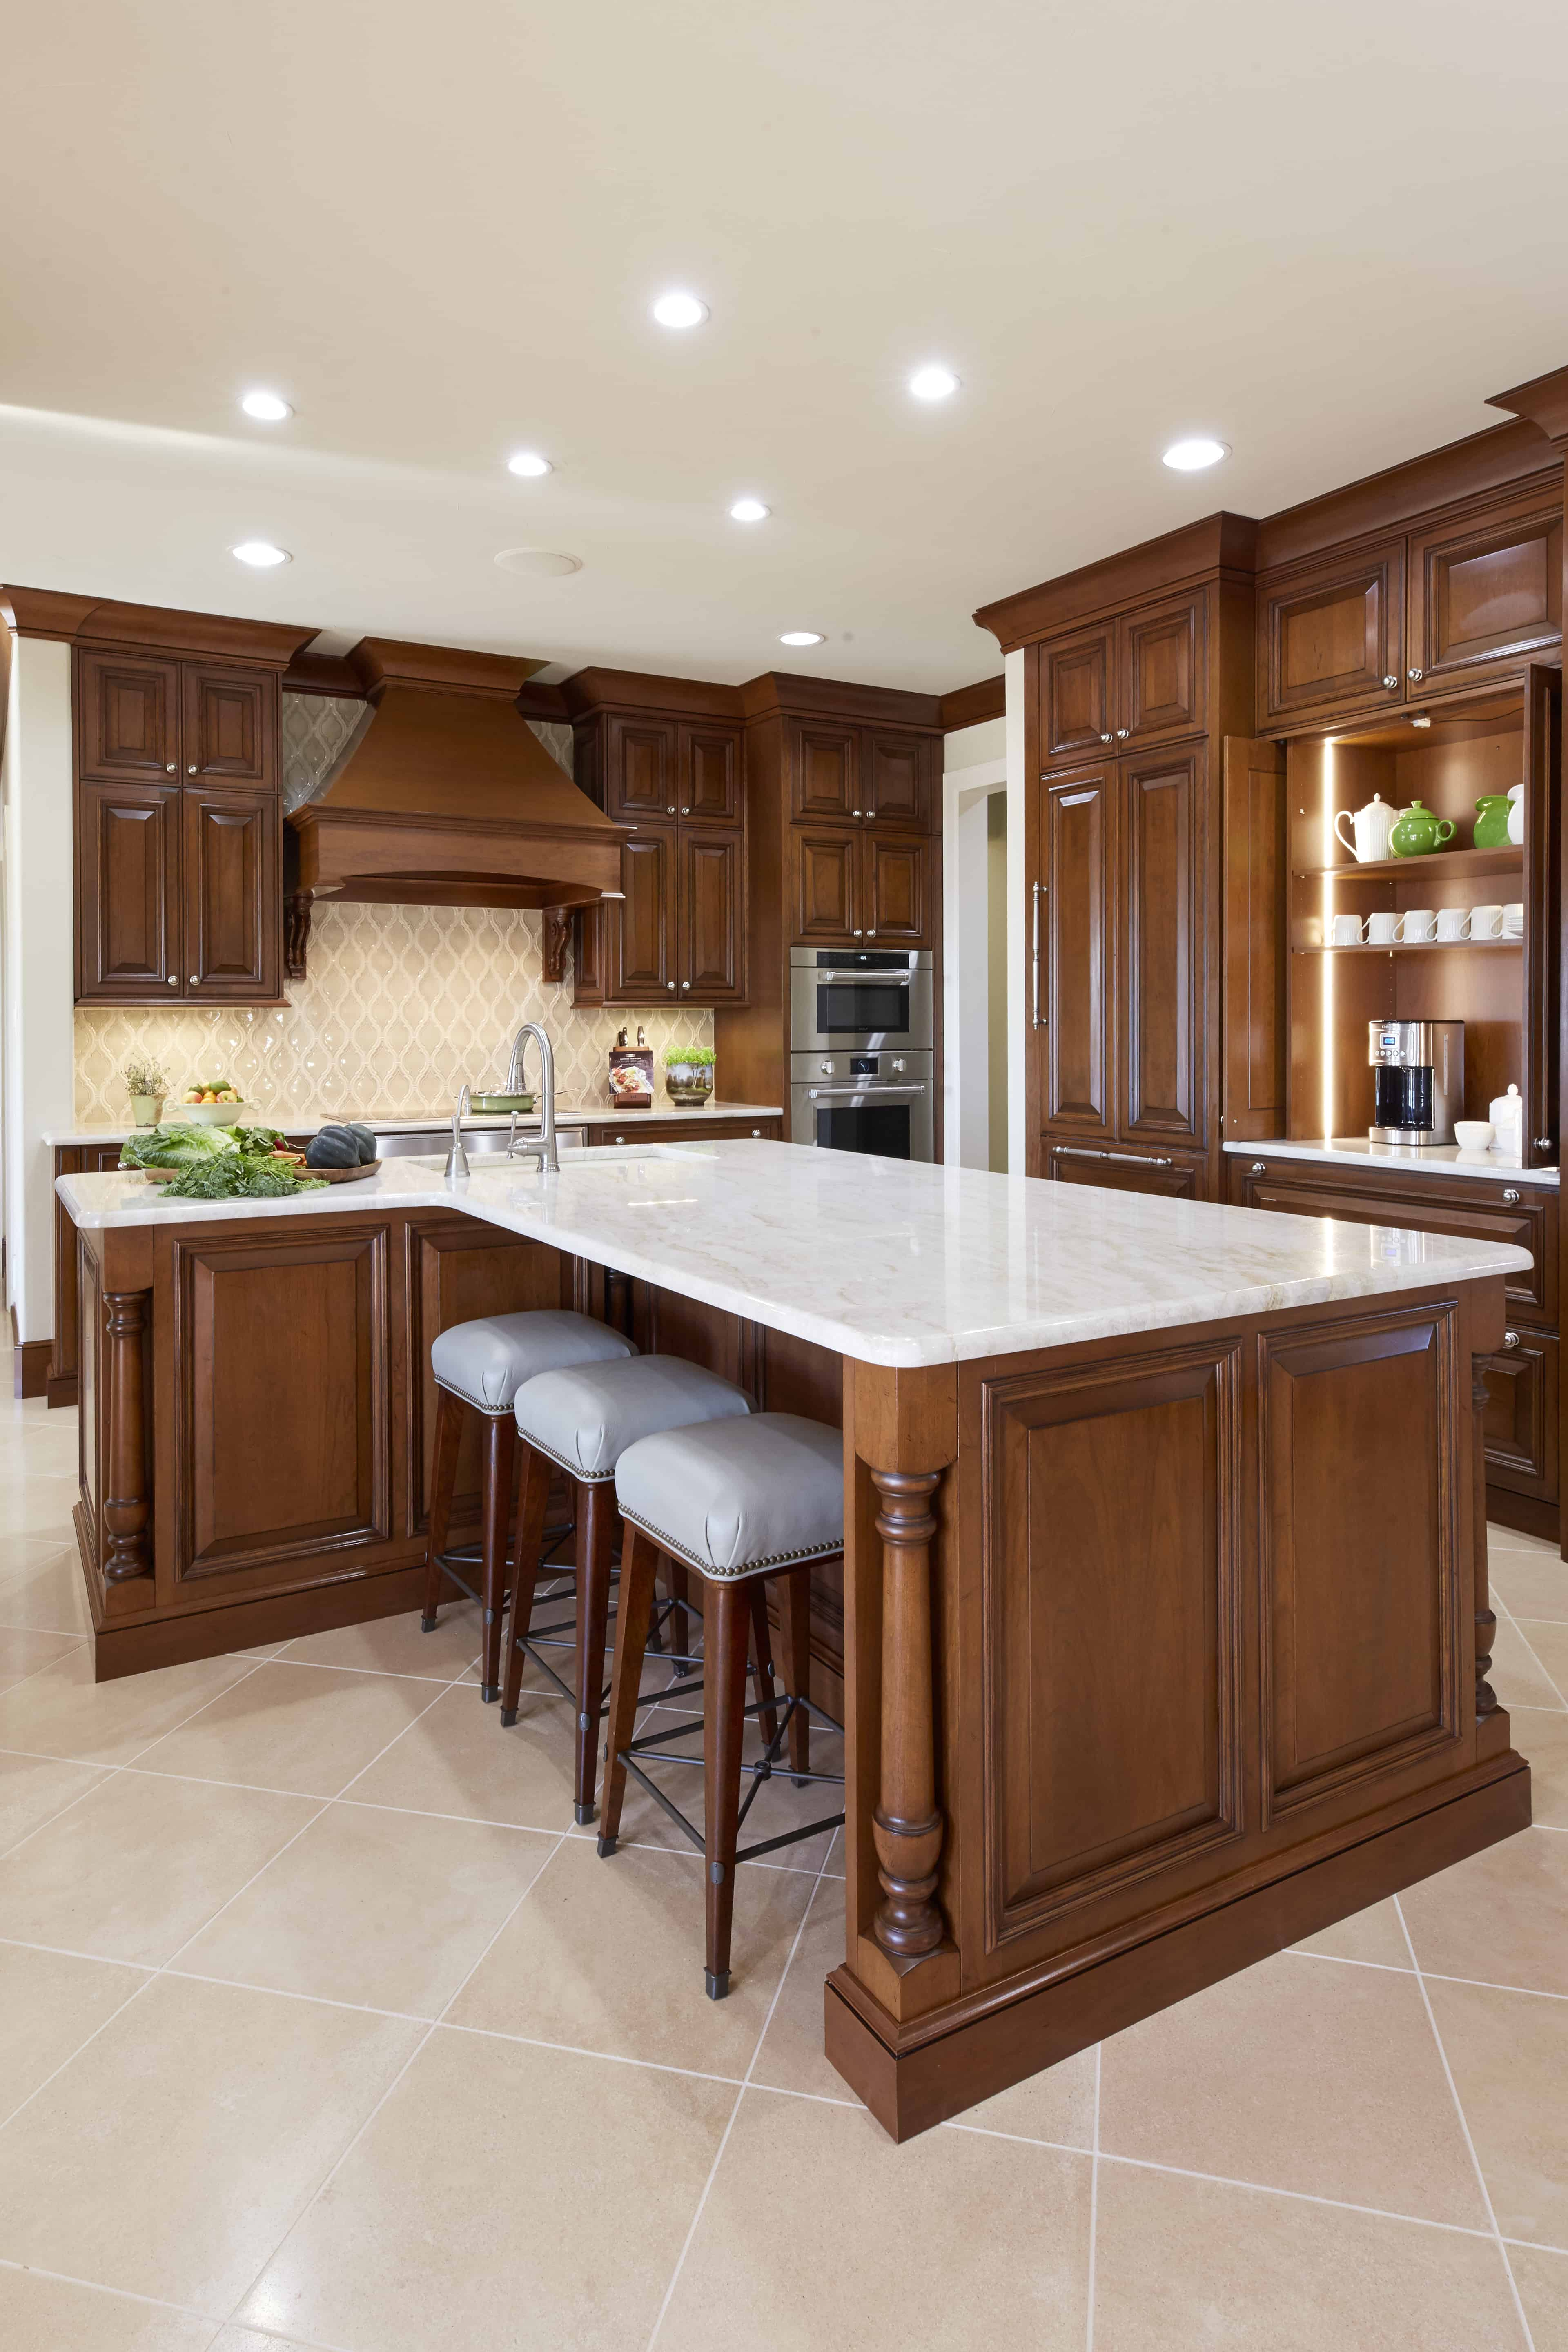 Traditional kitchen stained cabinets -hpd architecture ...